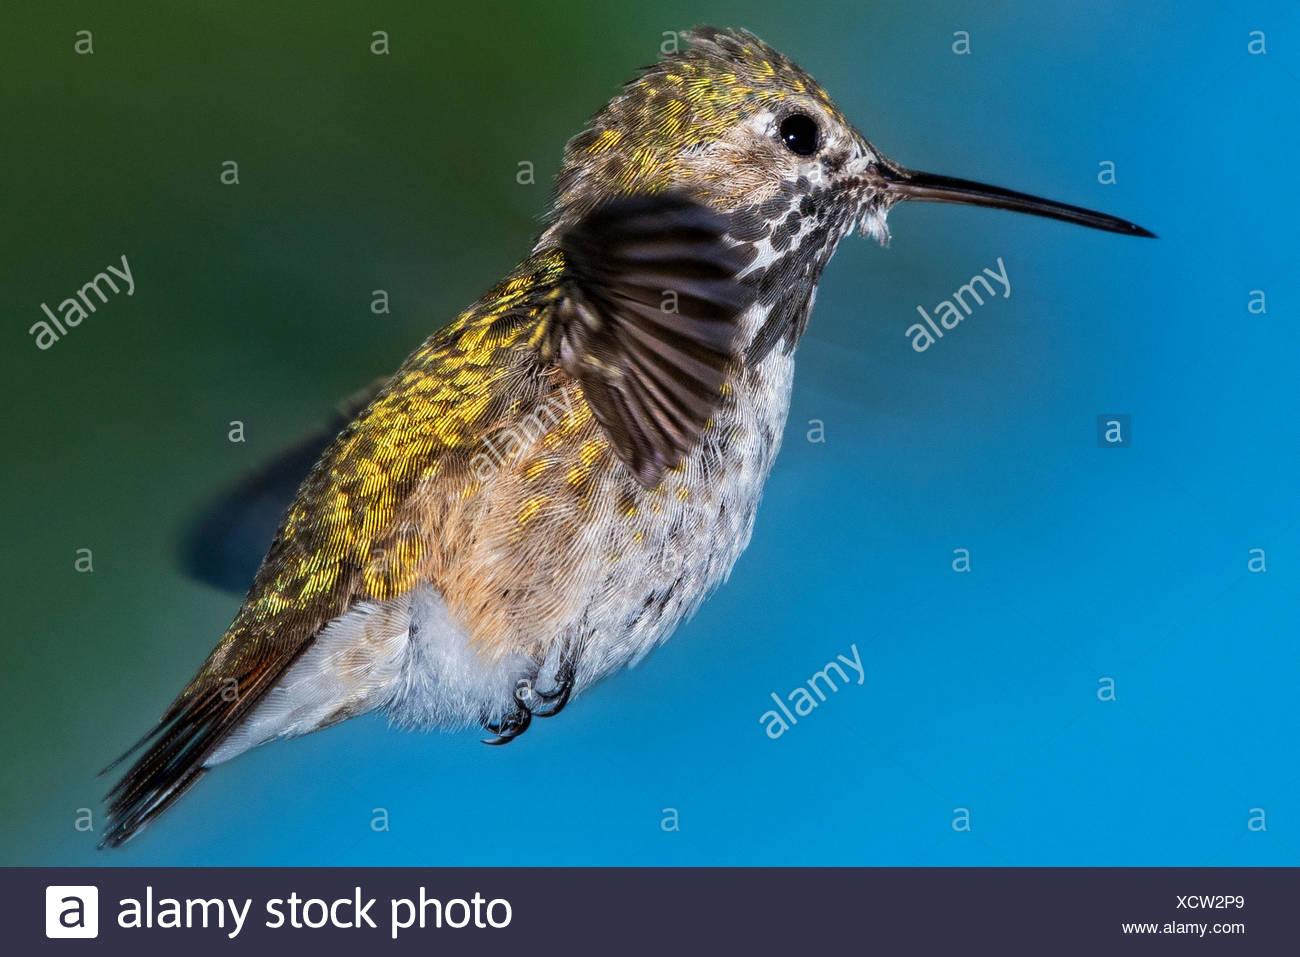 Portrait of a Calliope Hummingbird hovering in mid air - Stock Image